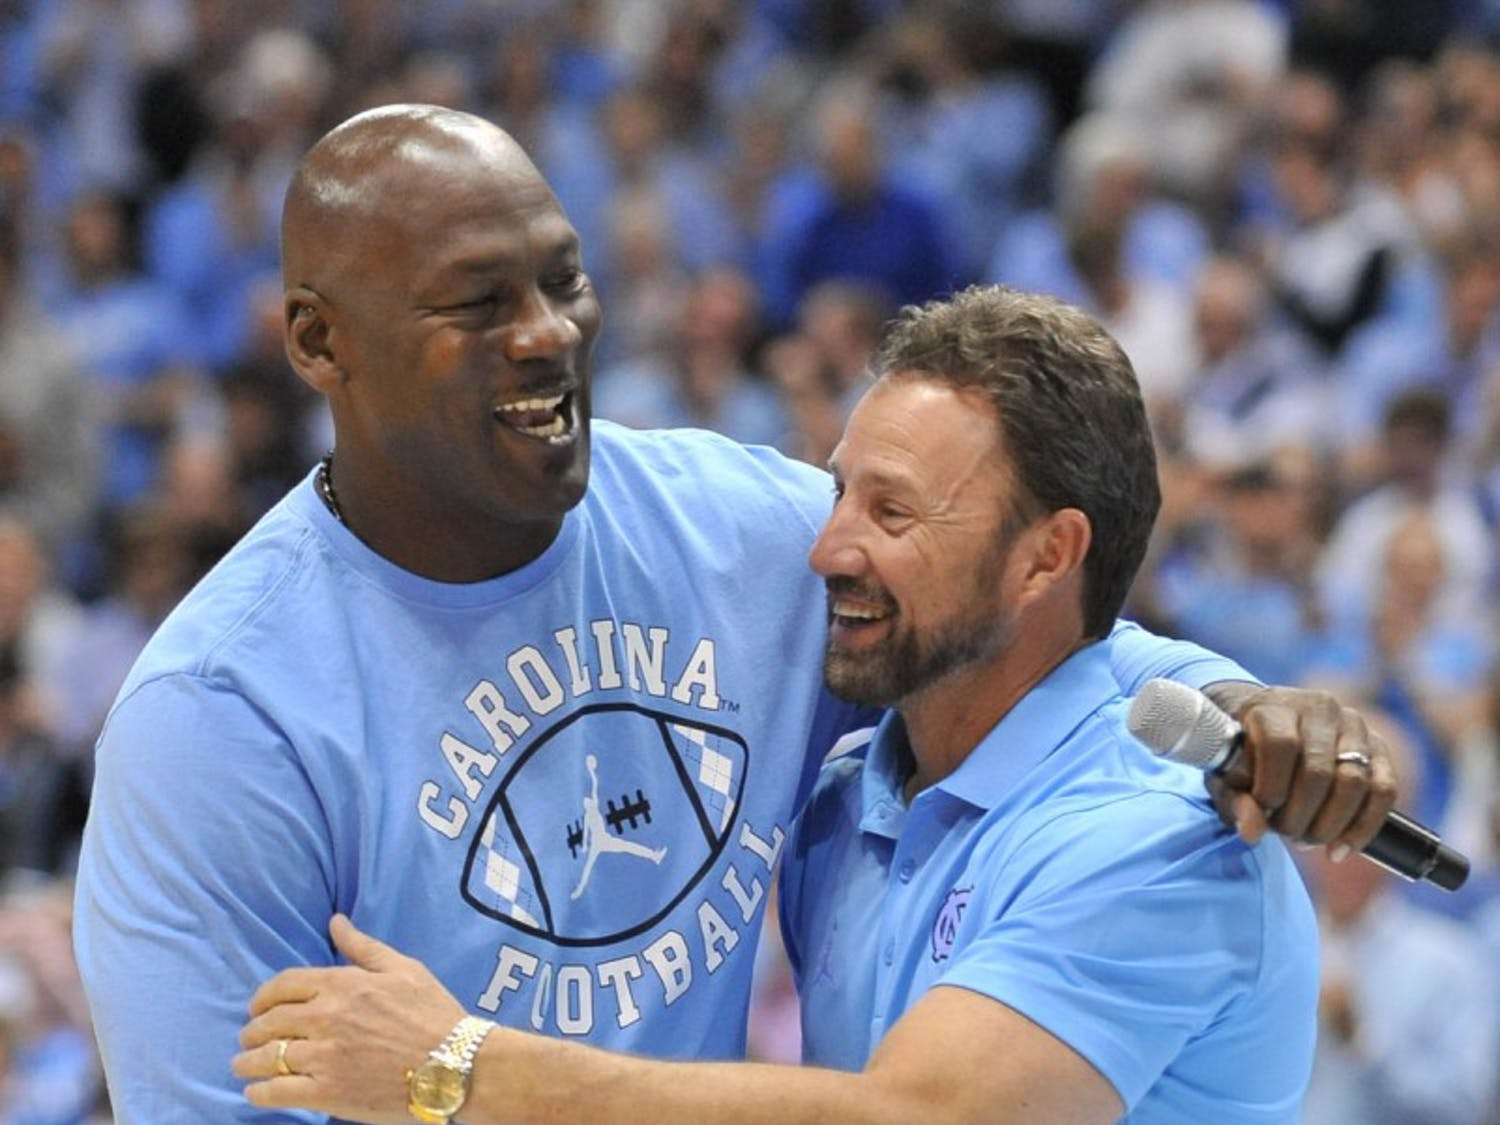 Former North Carolina basketball player and NBA Hall of Fame inductee Michael Jordan shakes hand with North Carolina football coach Larry Fedora at halftime of Saturday night's game. Jordan made an appearance to announce a new partnership between the Jordan brand and the NorthCarolina football team starting in the 2017 season.